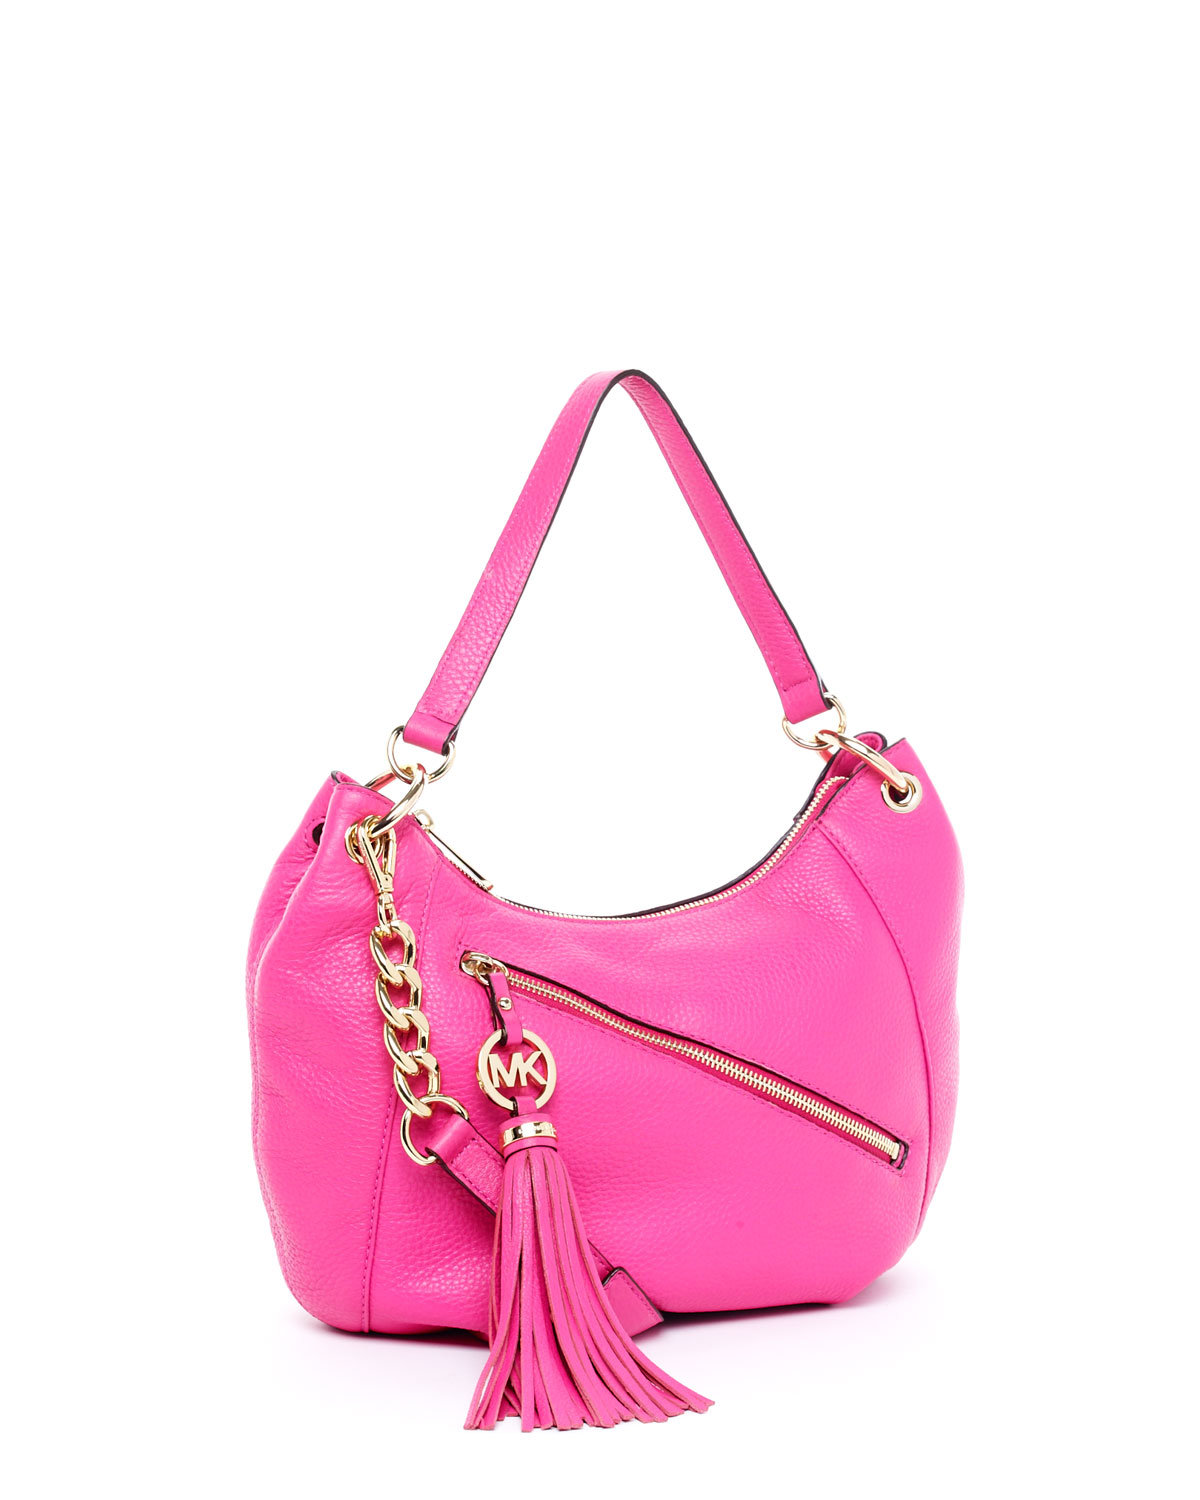 c098c4613f8b Michael Kors Charm-Tassel Convertible Shoulder Bag, Zinnia in Pink ...